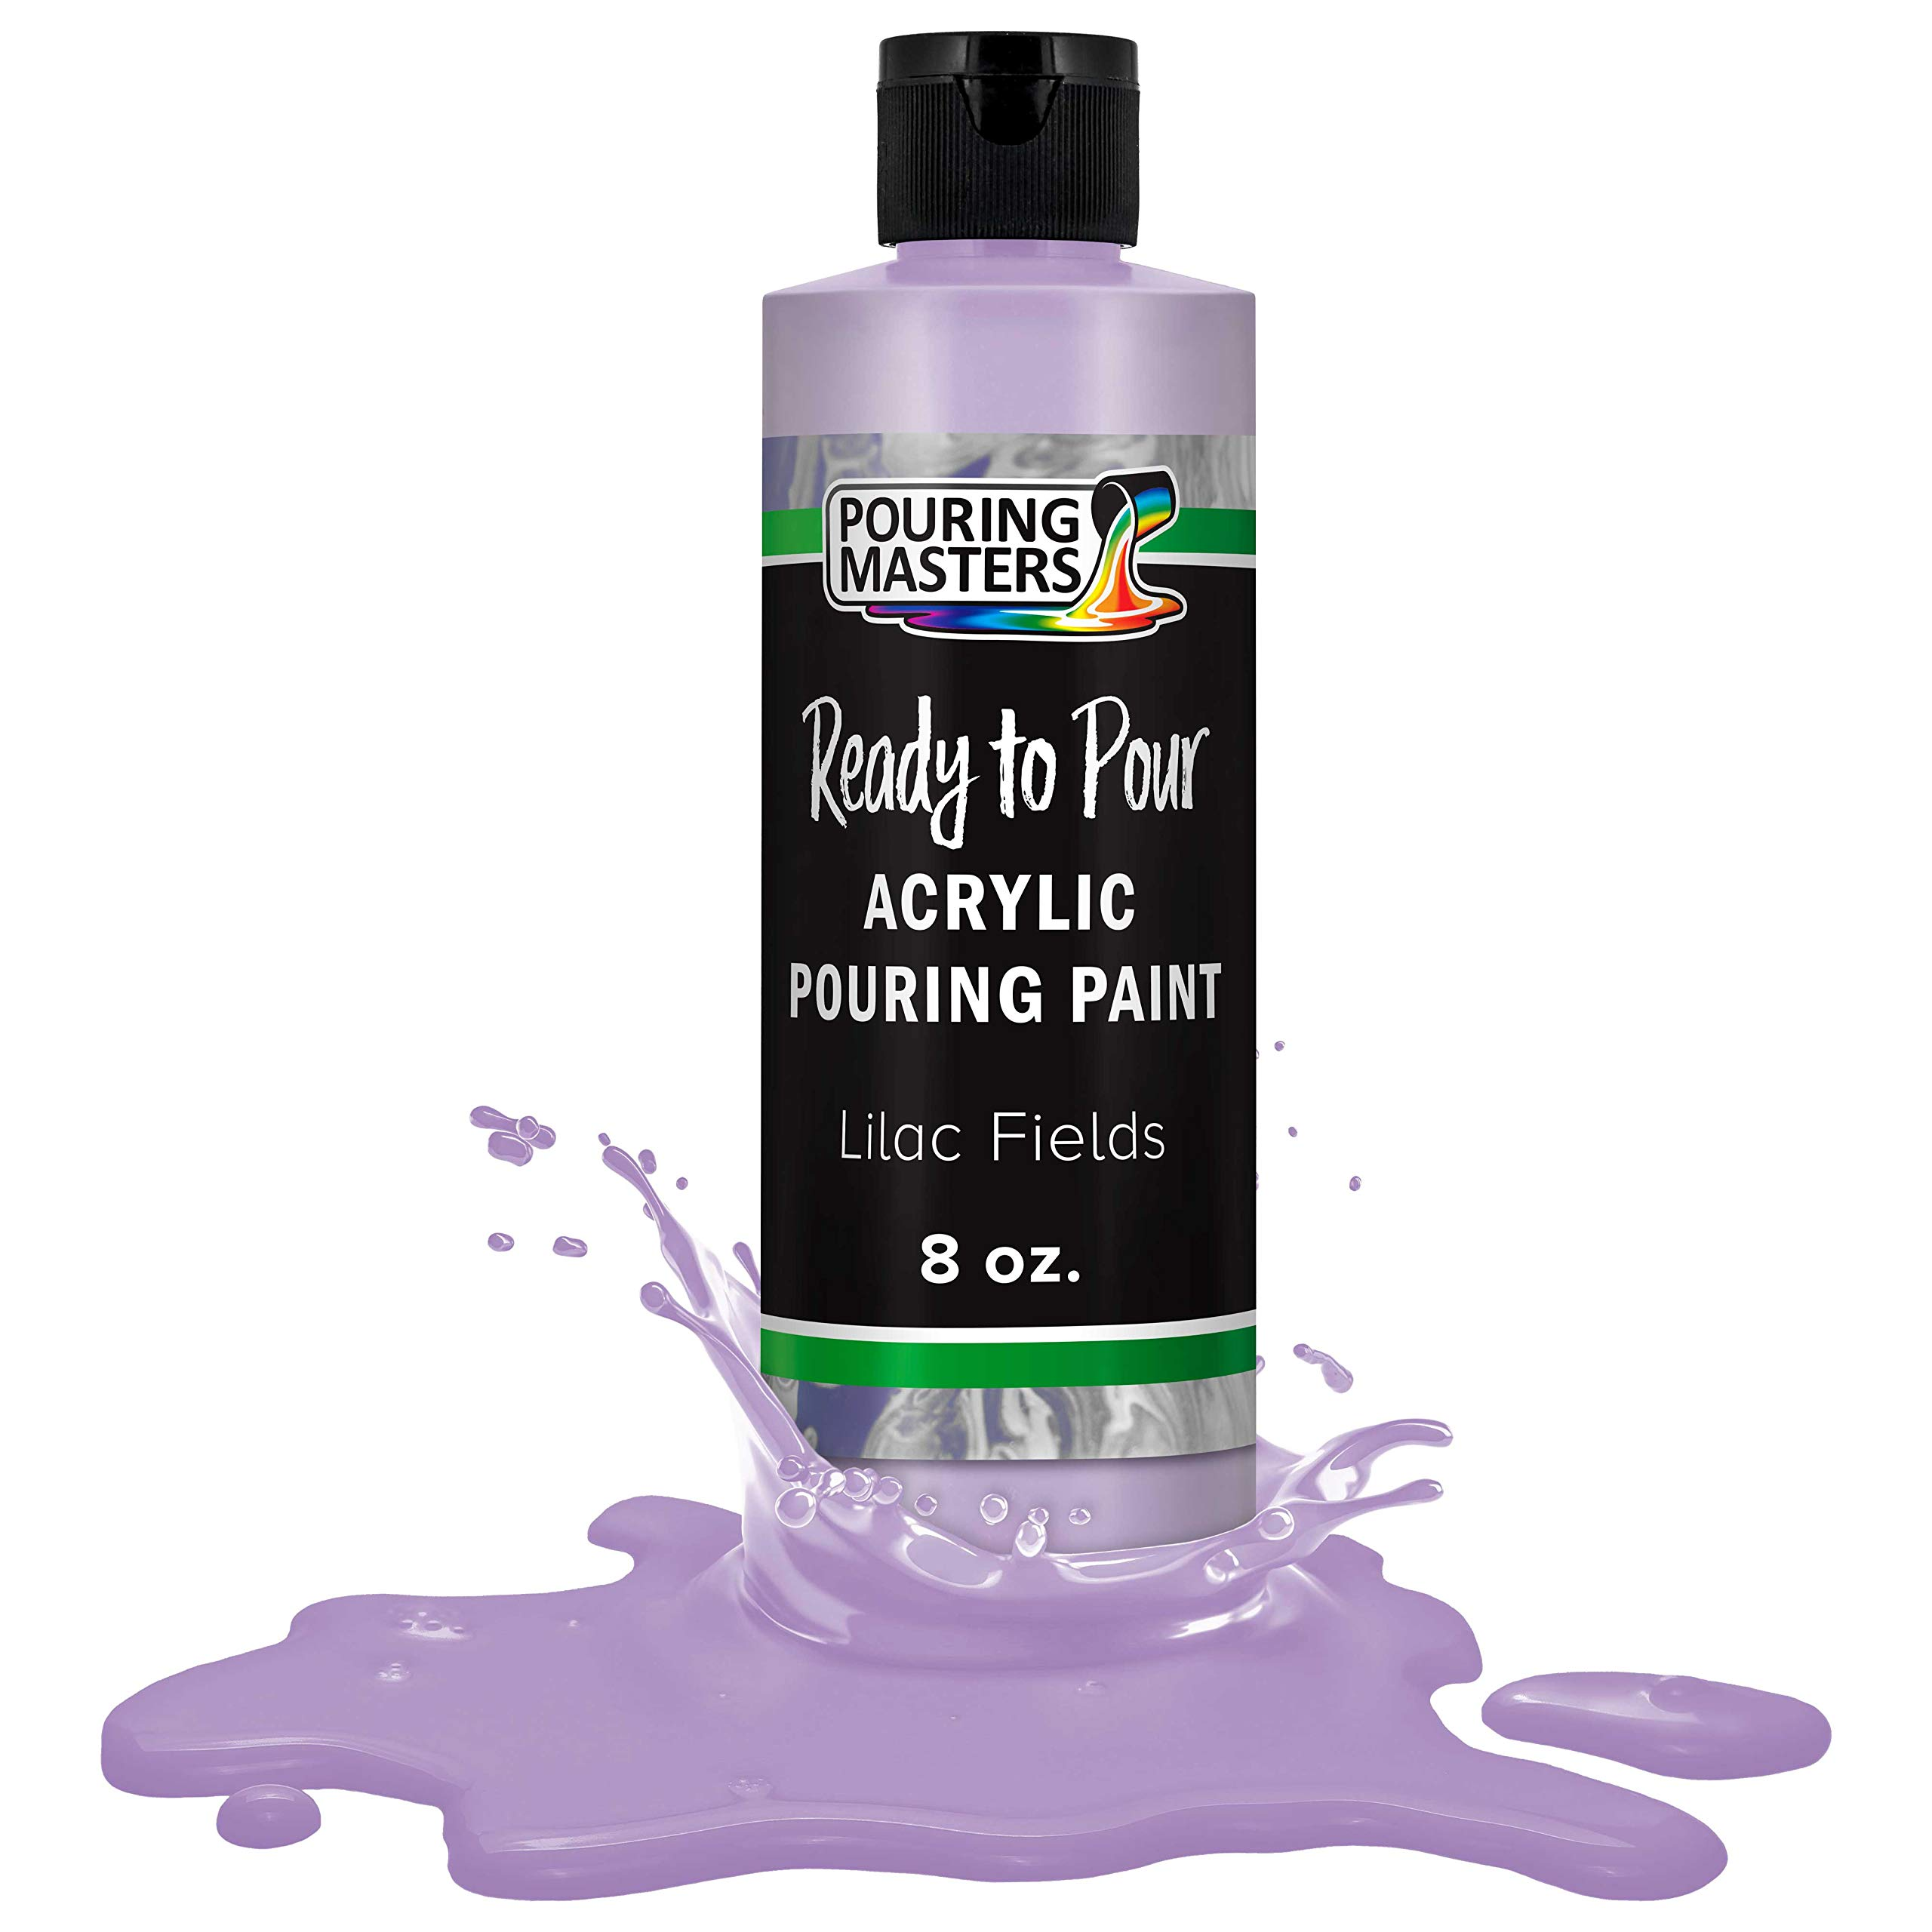 Pouring Masters Lilac Fields Acrylic Ready to Pour Pouring Paint – Premium 8-Ounce Pre-Mixed Water-Based - for Canvas, Wood, Paper, Crafts, Tile, Rocks and More